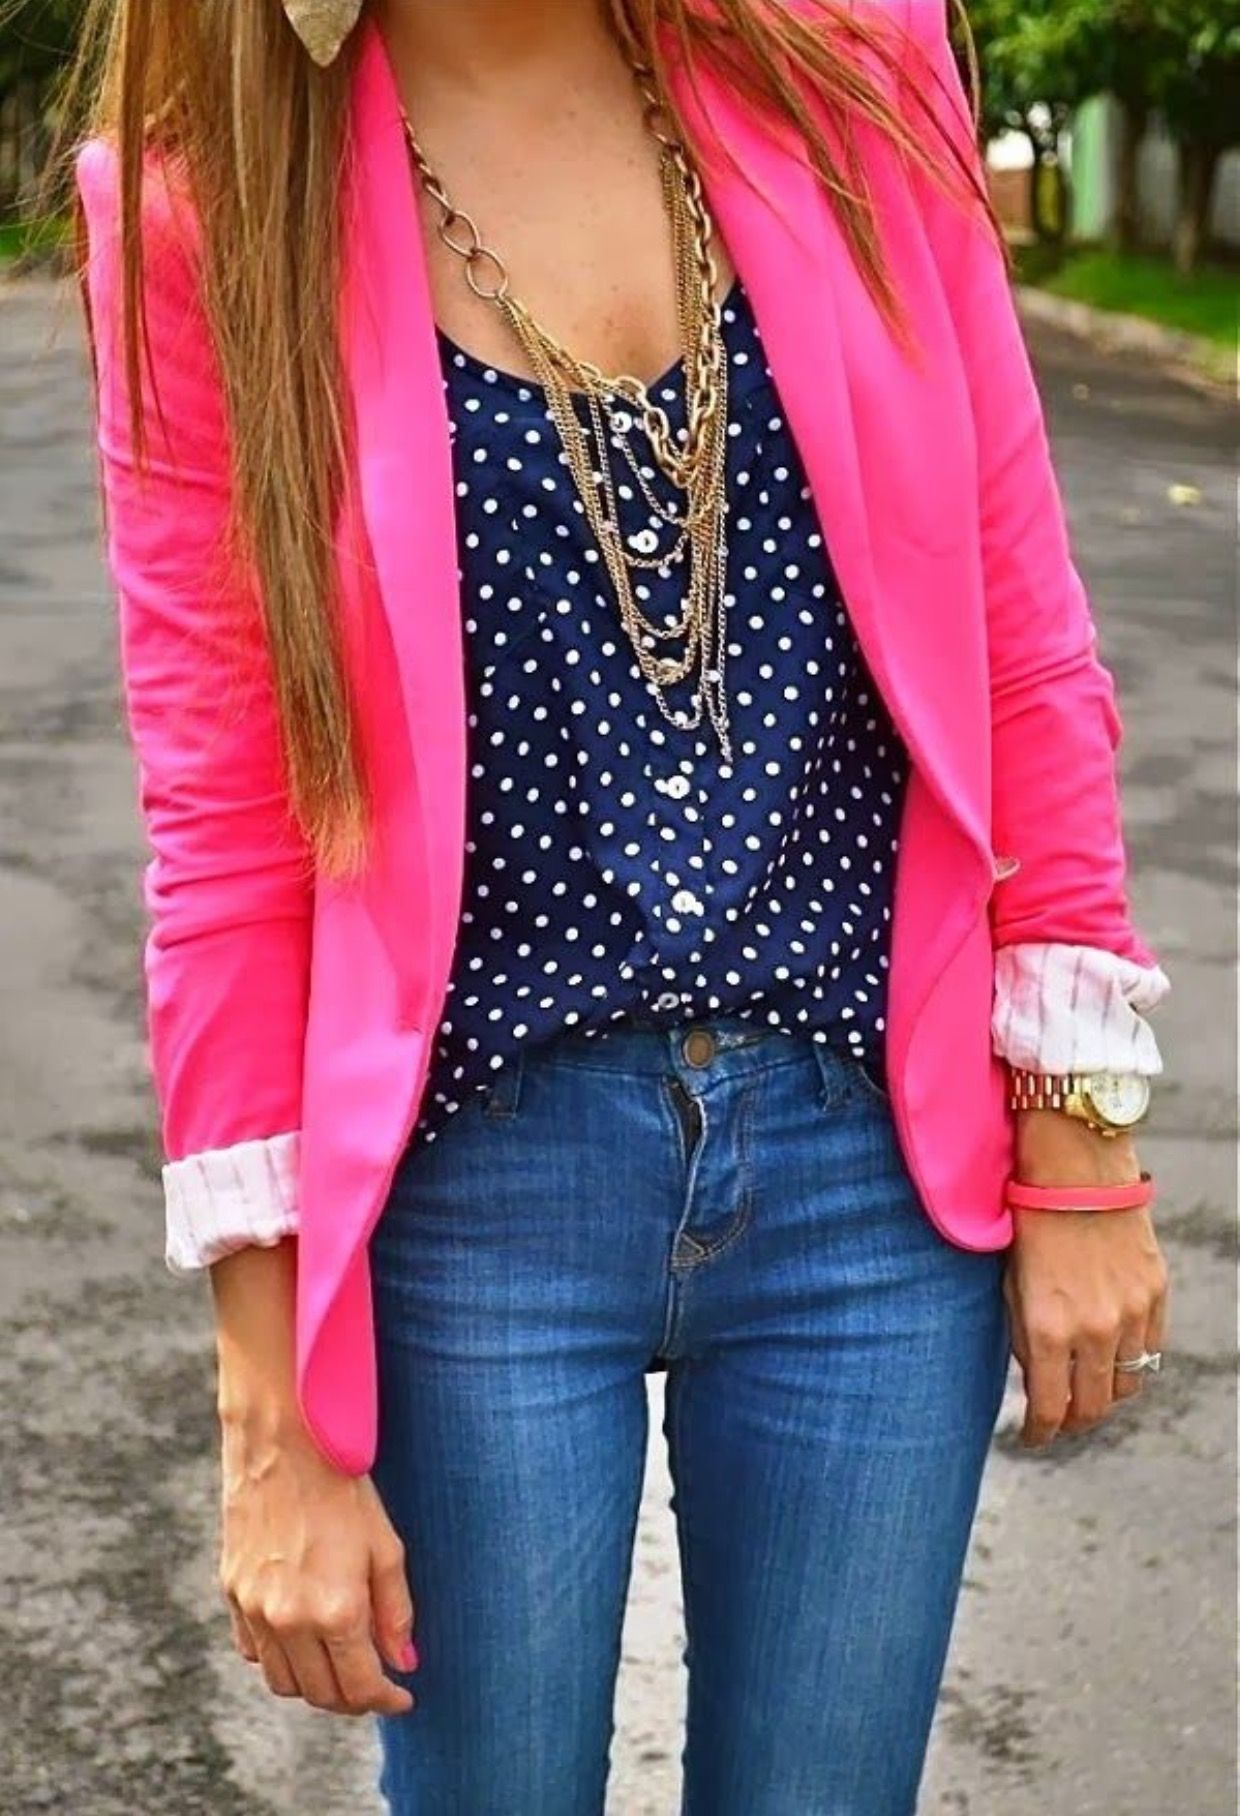 Pin by amy hietter on workish clothes pinterest hot pink blazers